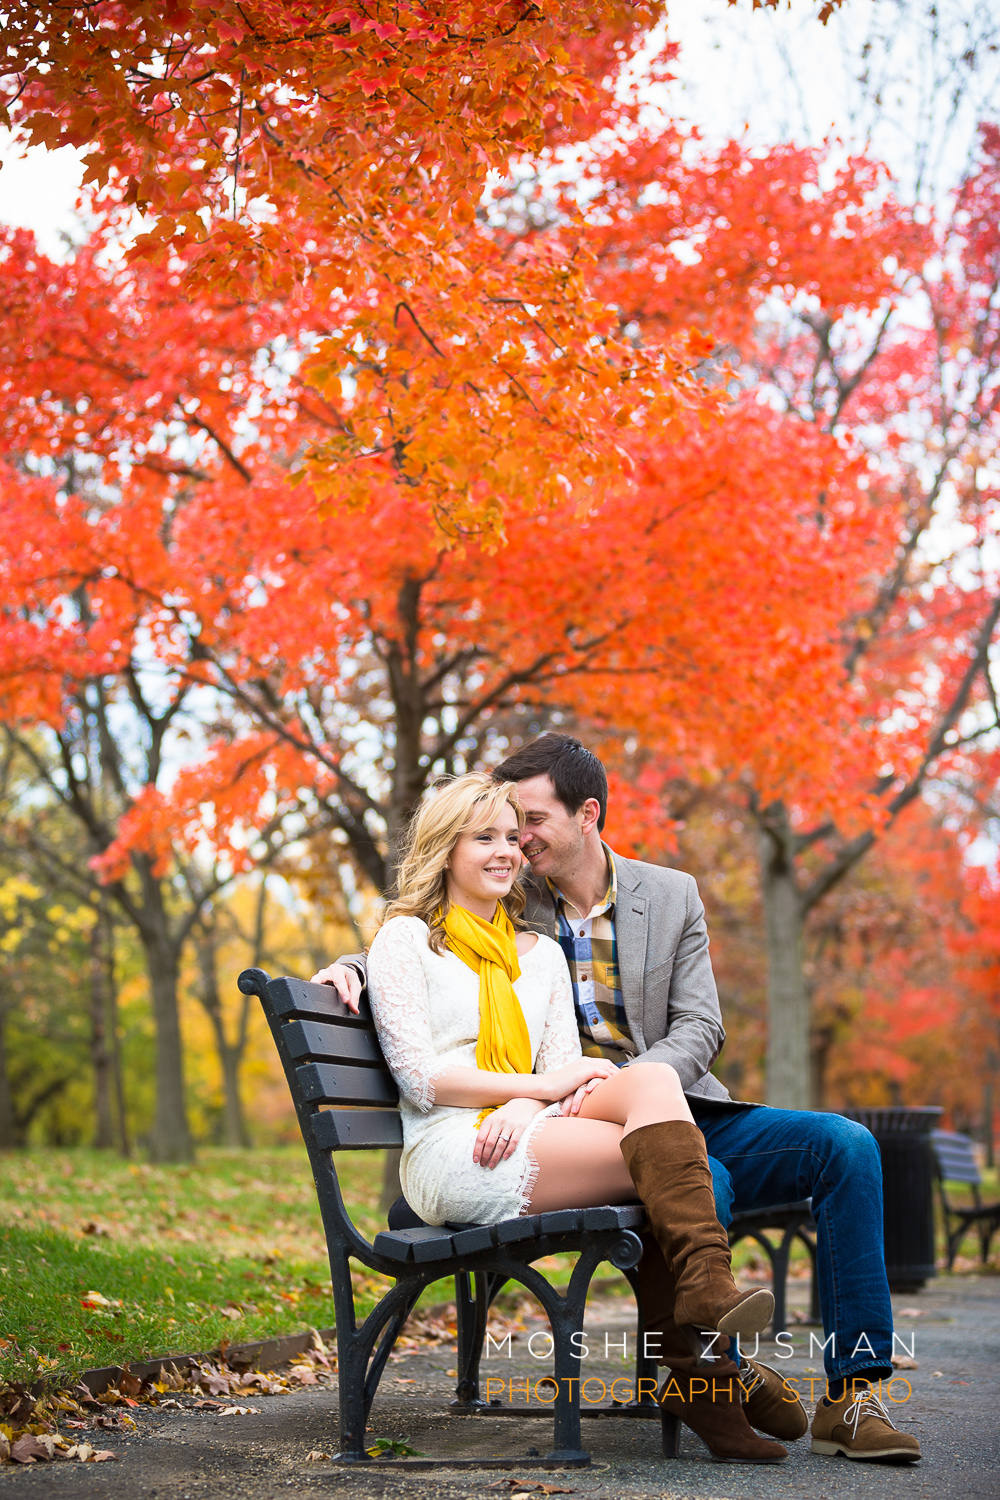 Engagement-Photographer-Washington-DC-Moshe-Zusman-Lauren-and-Tyler-15.jpg